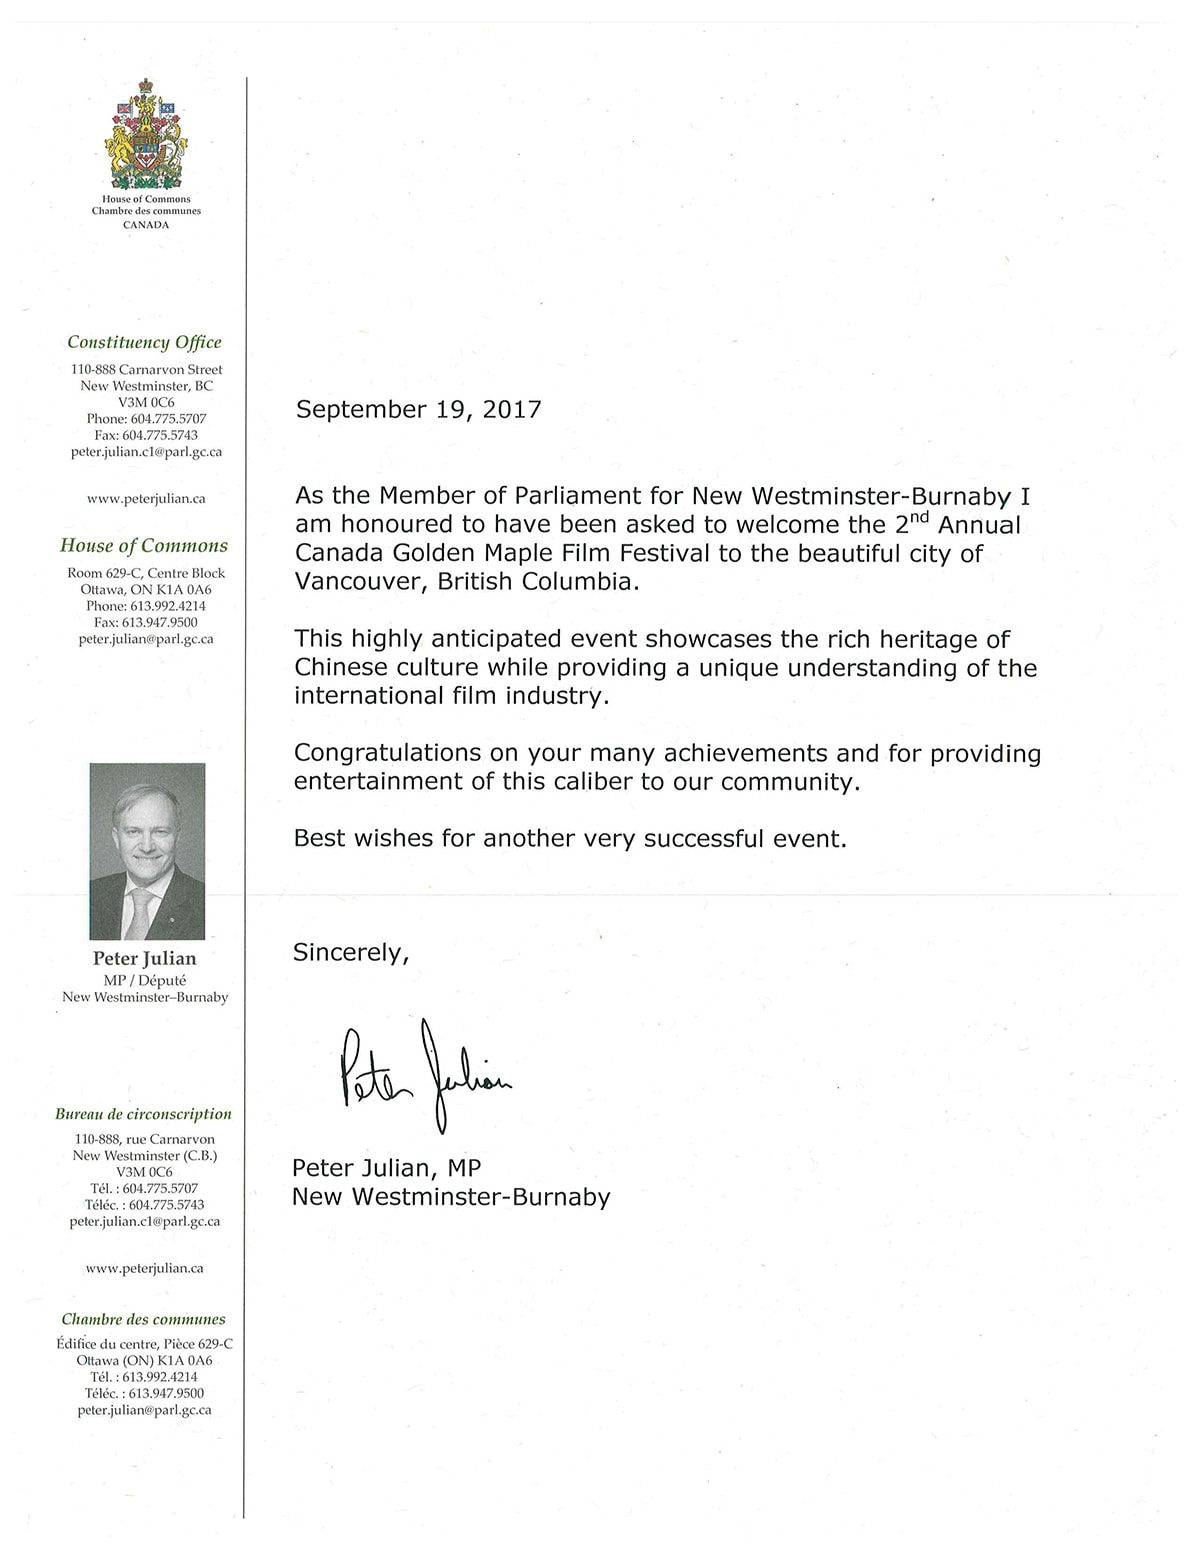 Congratulatory Letter from Peter Julian, Federal Member of Parliament